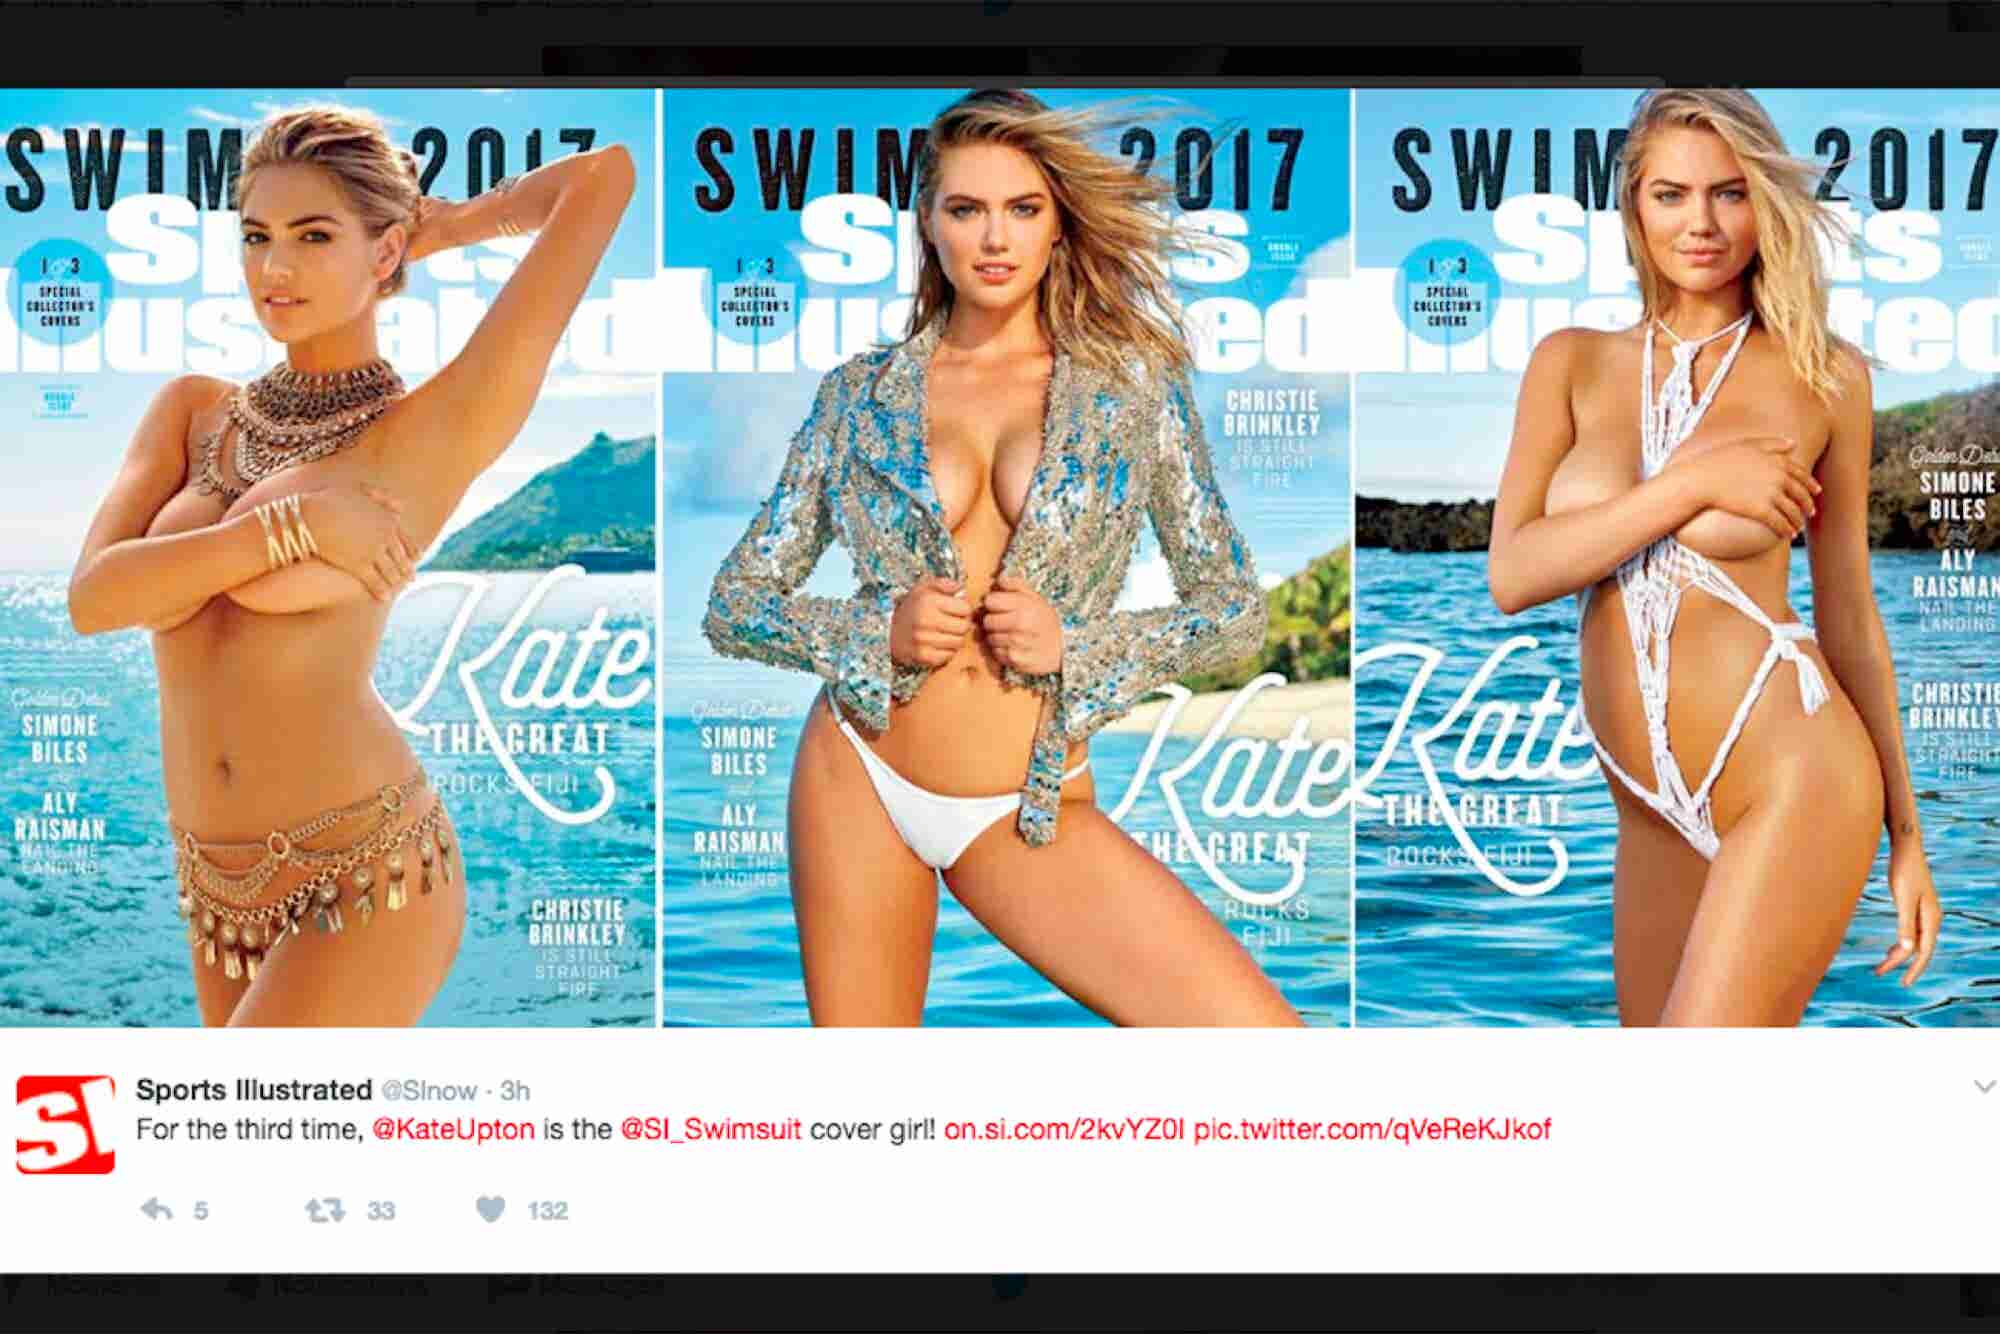 Kate Upton Returns as the Face of Sports Illustrated's Swimsuit Franchise